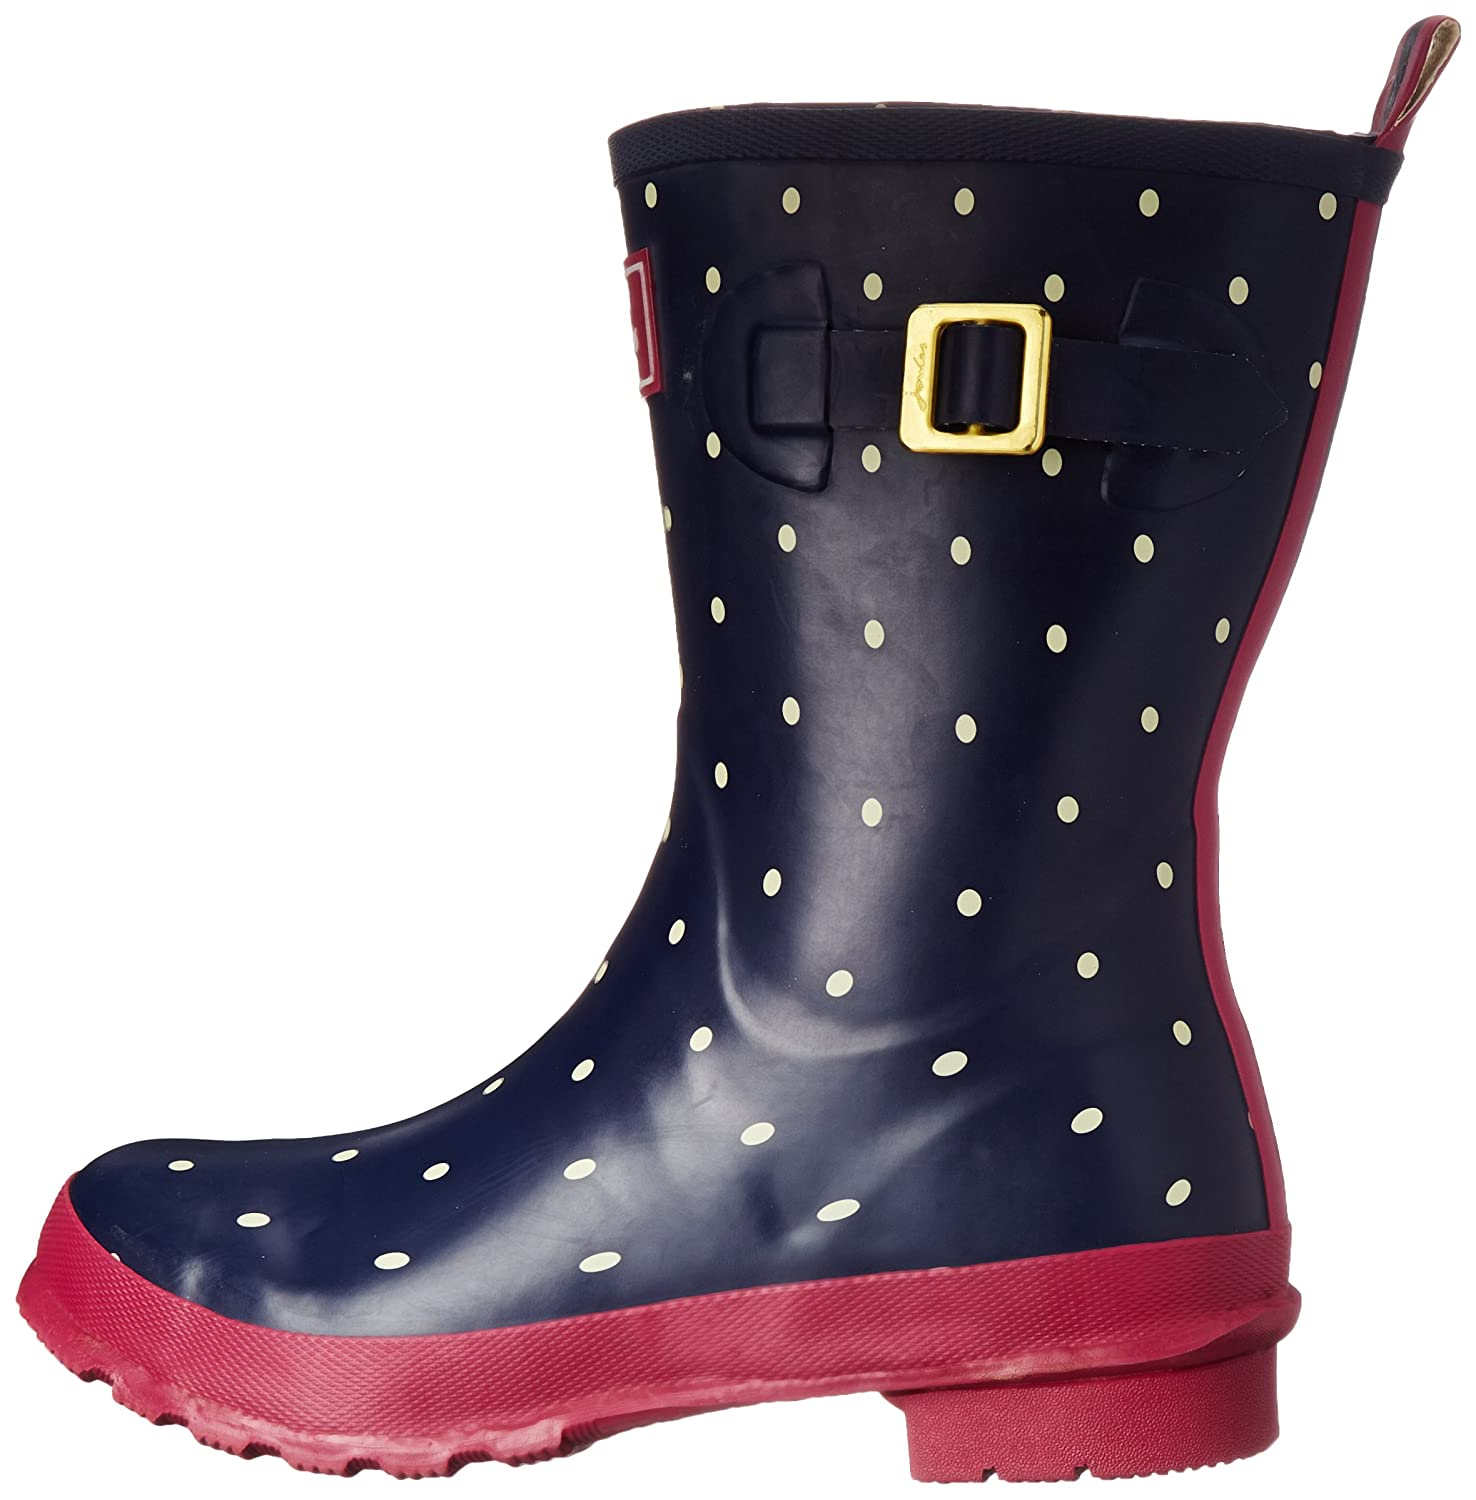 Joules 7 Women's Molly Welly Rain Boot B00VLNPCMG 7 Joules M US|Navy Spot White 8d686e